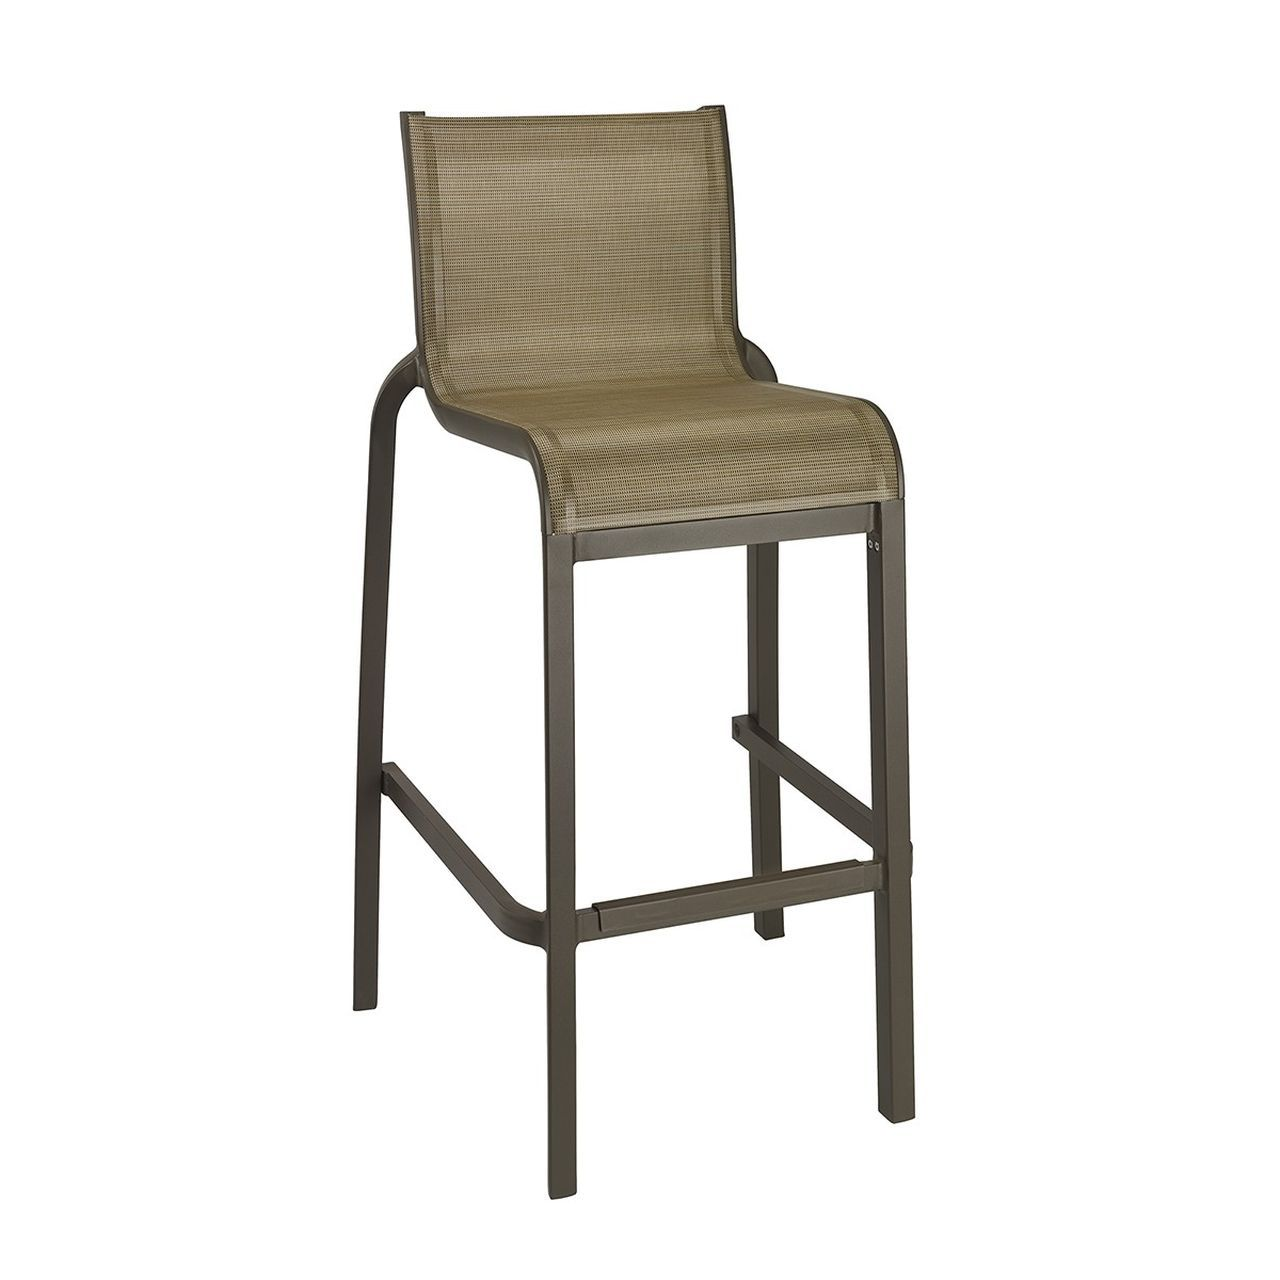 Grosfillex Sunset Armless Barstool in Cognac/Fusion Bronze